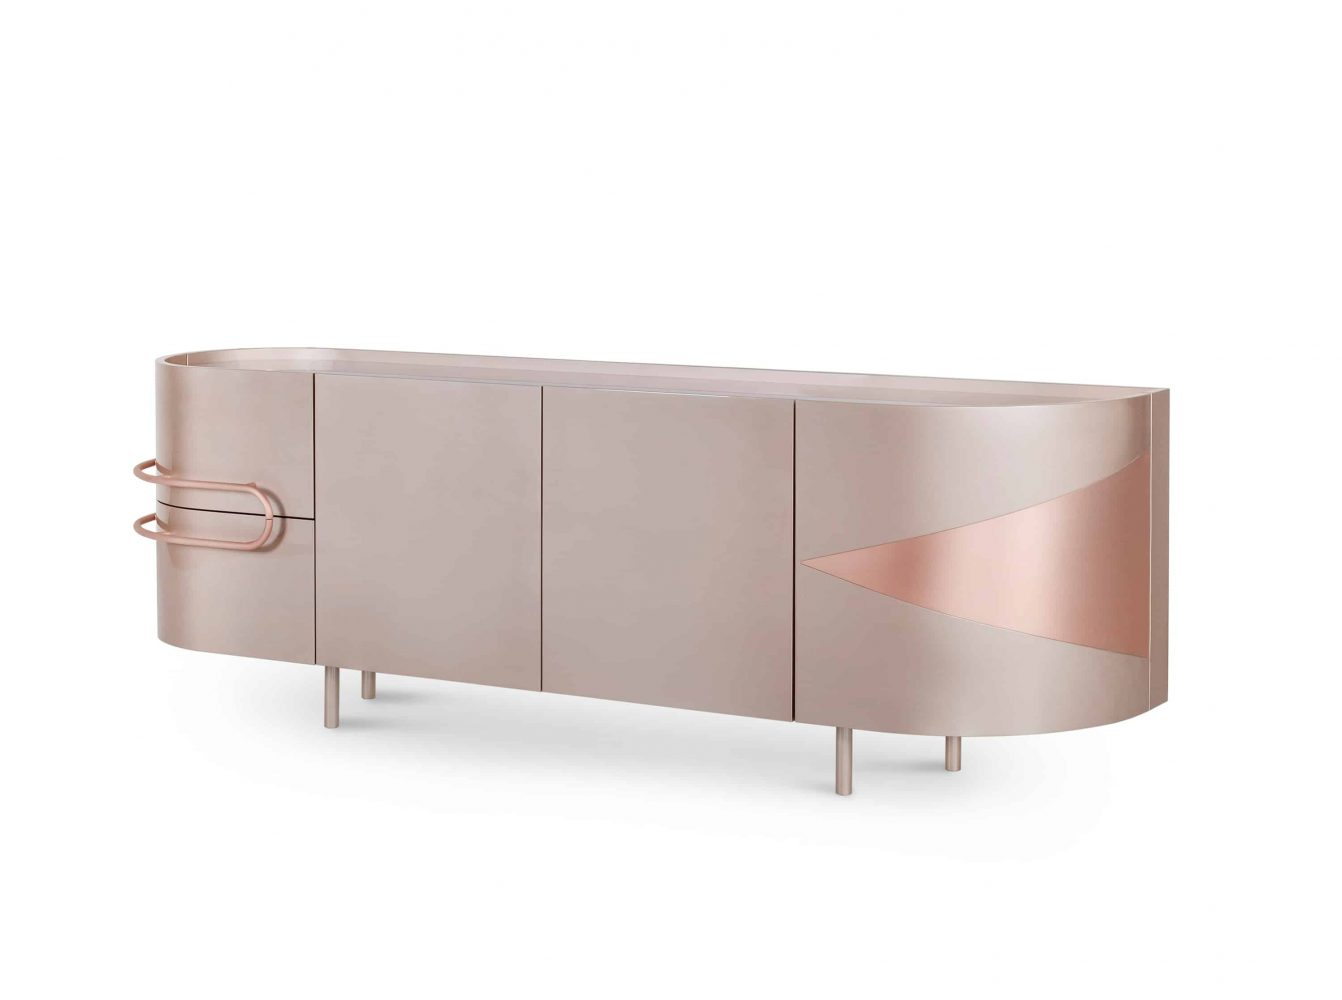 Olival-G703354-Sideboard-S-02